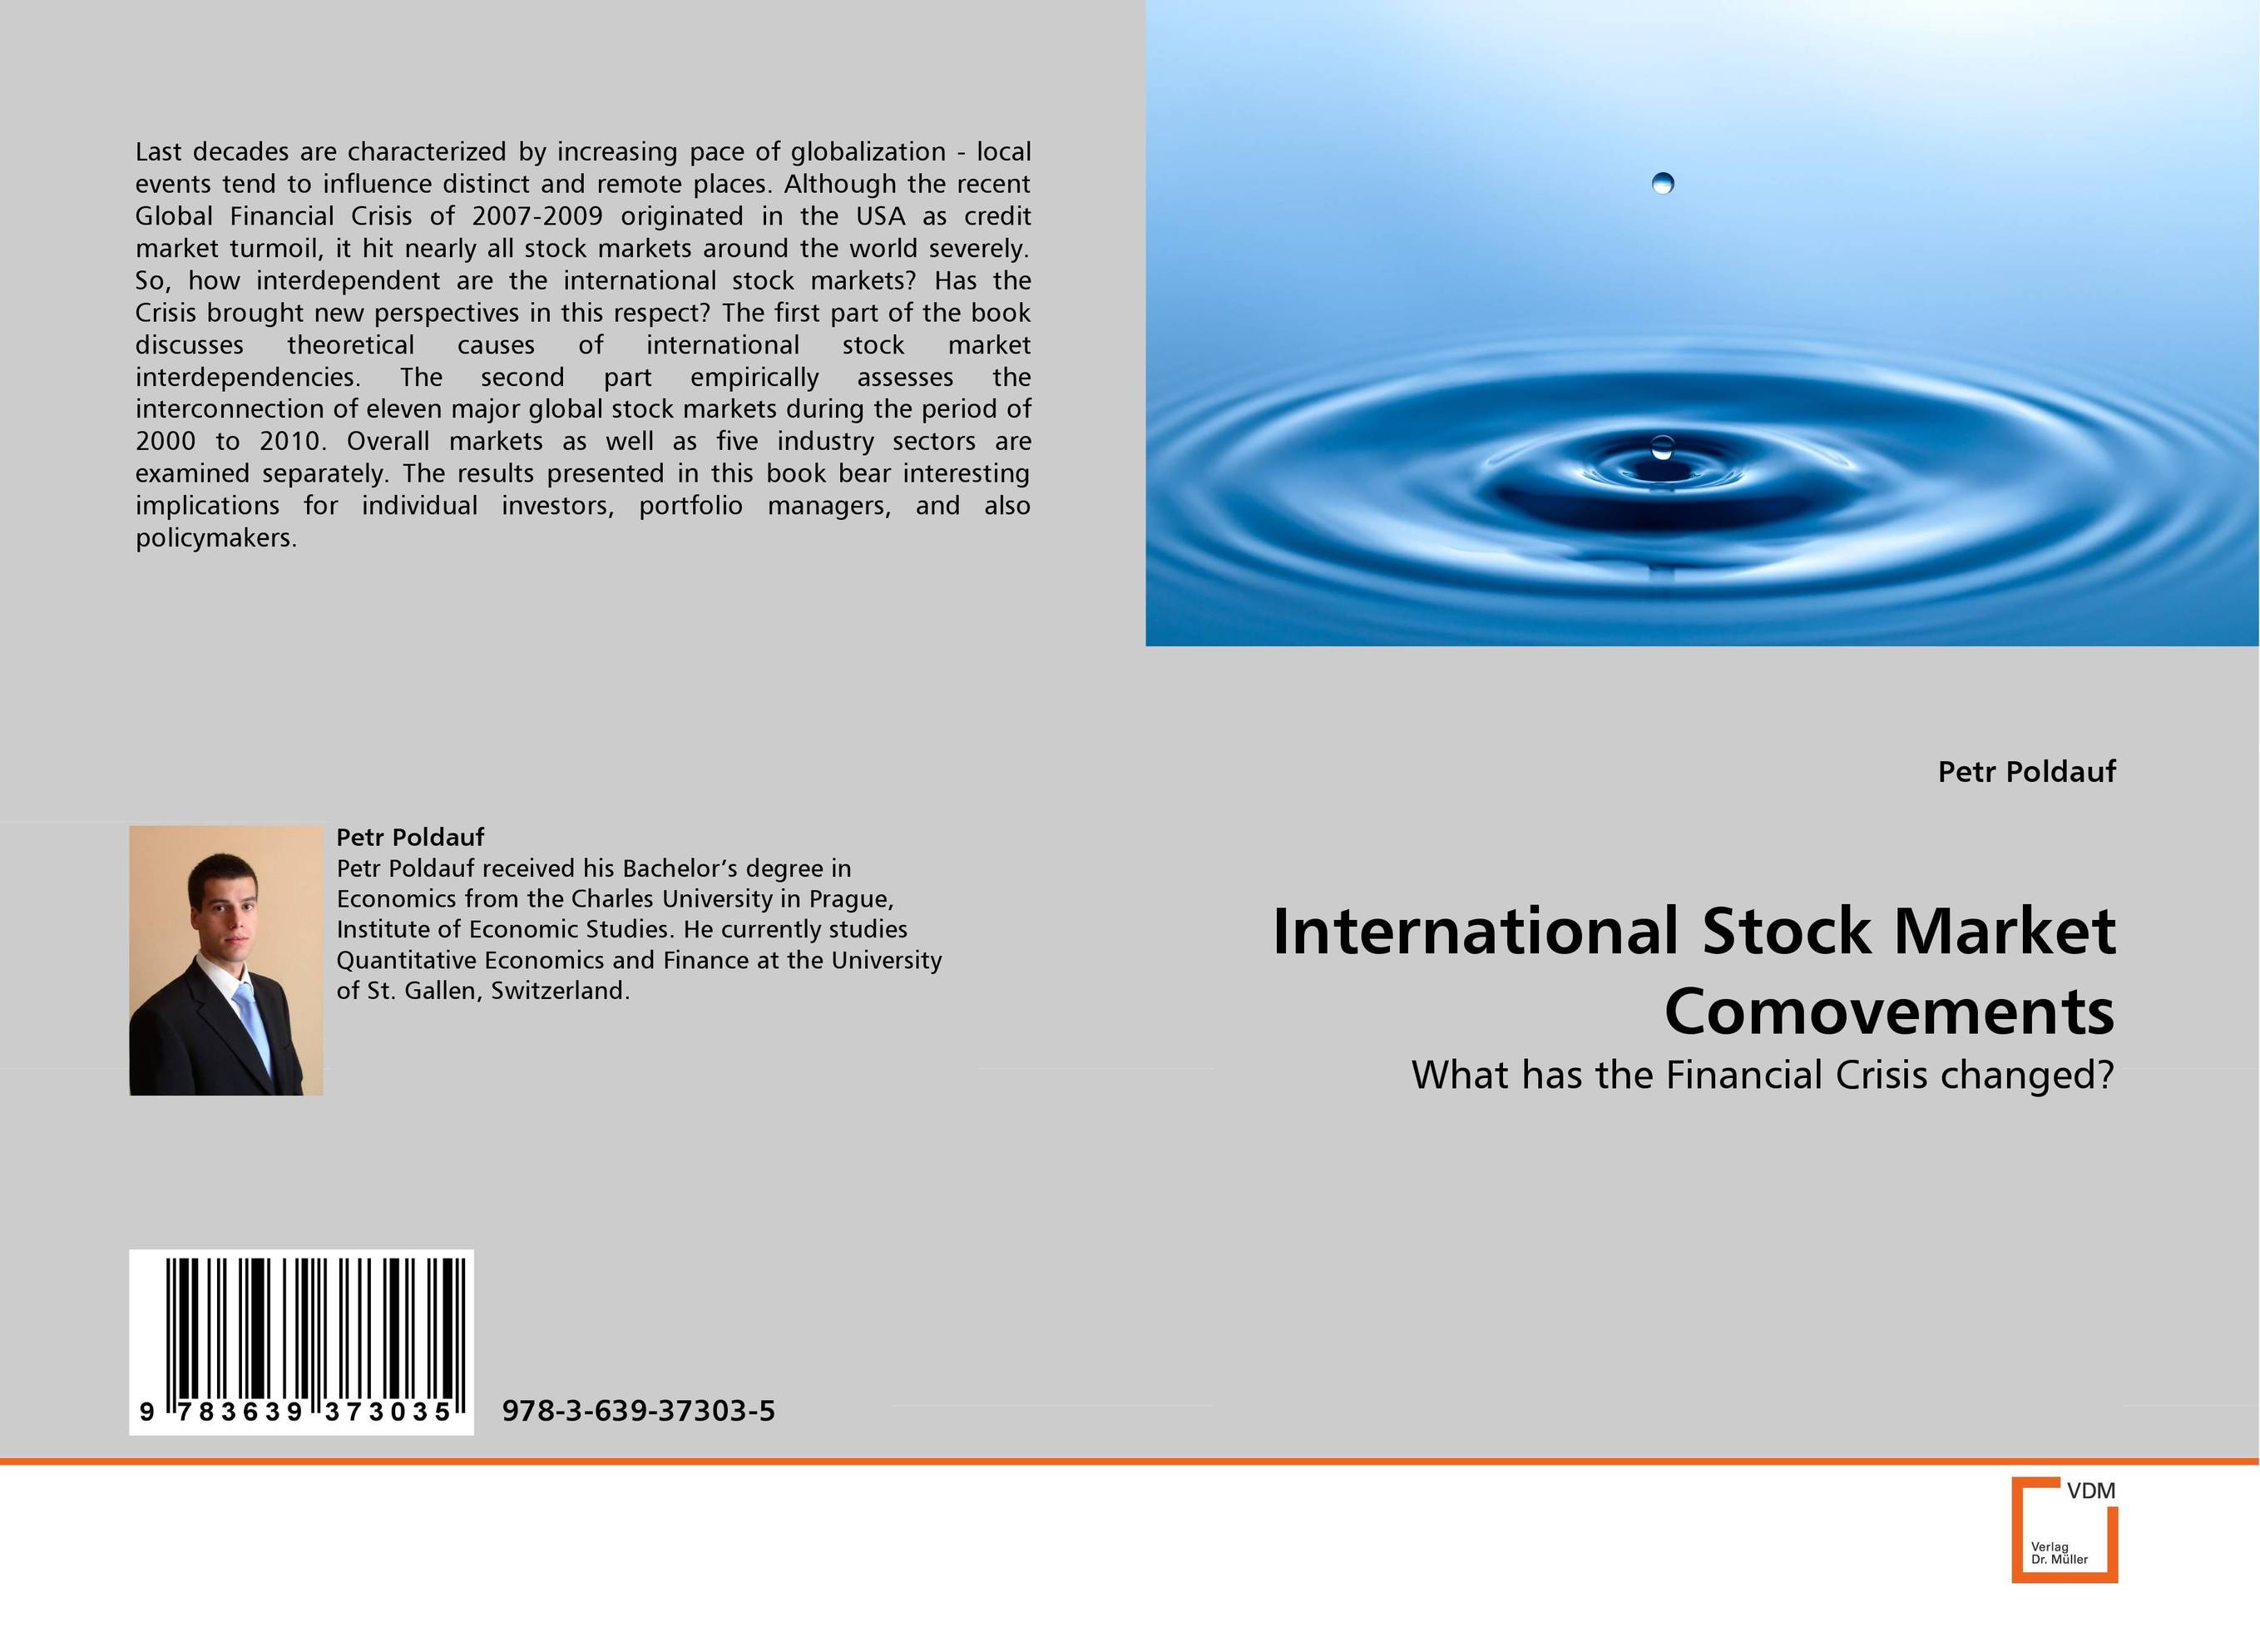 International Stock Market Comovements купить